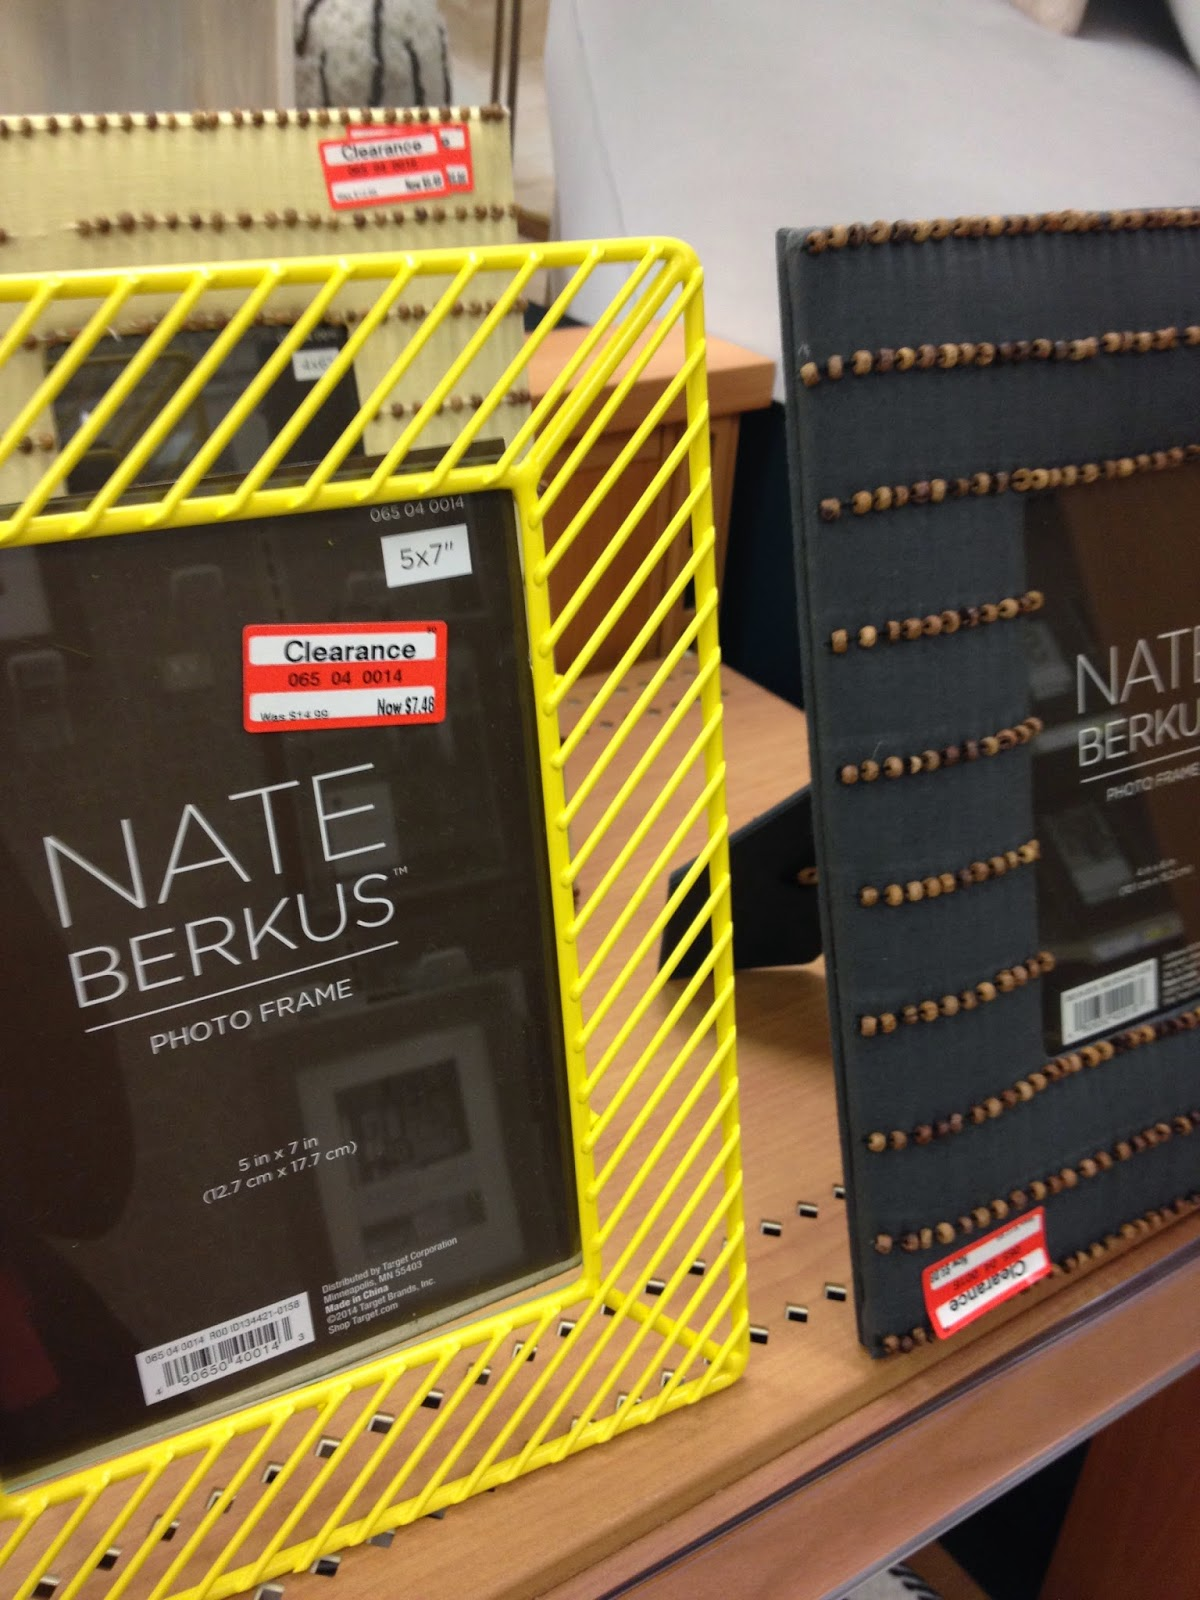 Target Home Decor Clearance: Nate Berkus, Threshold and more!